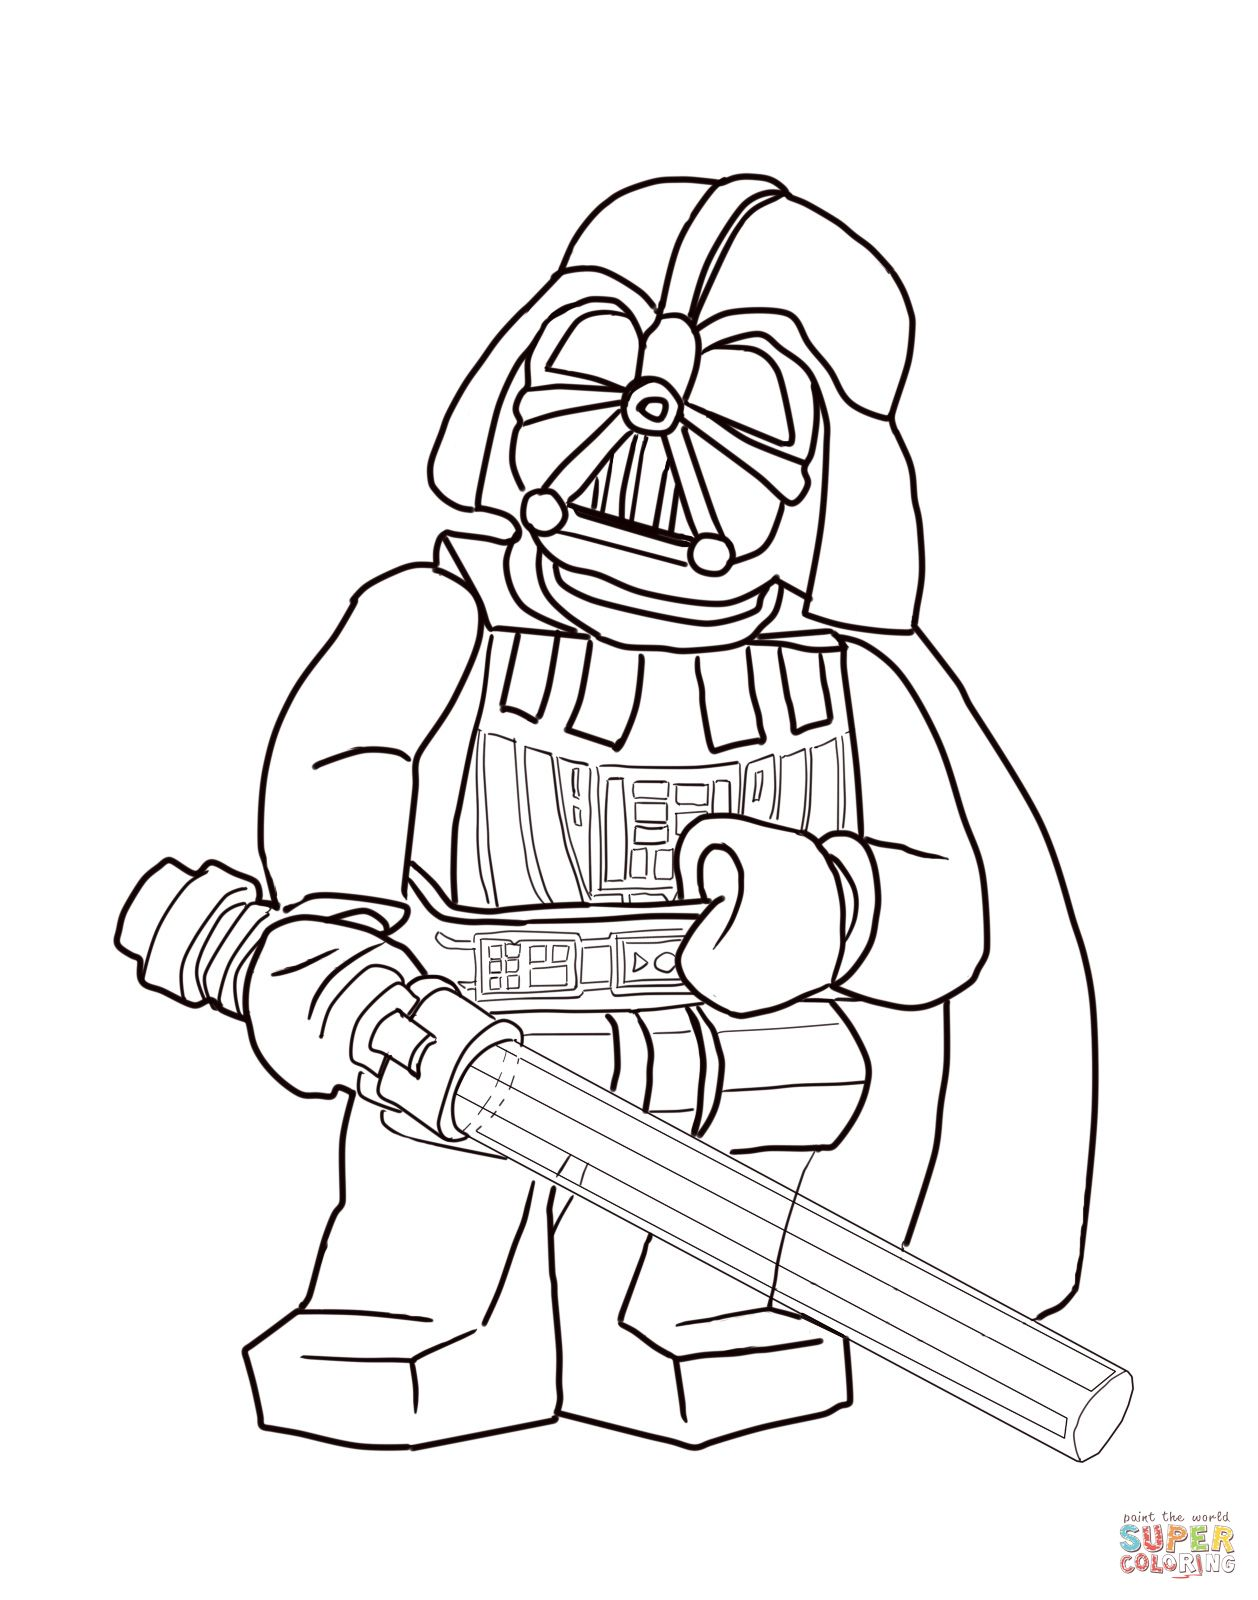 Lego coloring pages to print lego coloring pages lego darth - Lego Star Wars Darth Vader Coloring Pages Lego Star Wars Darth Vader